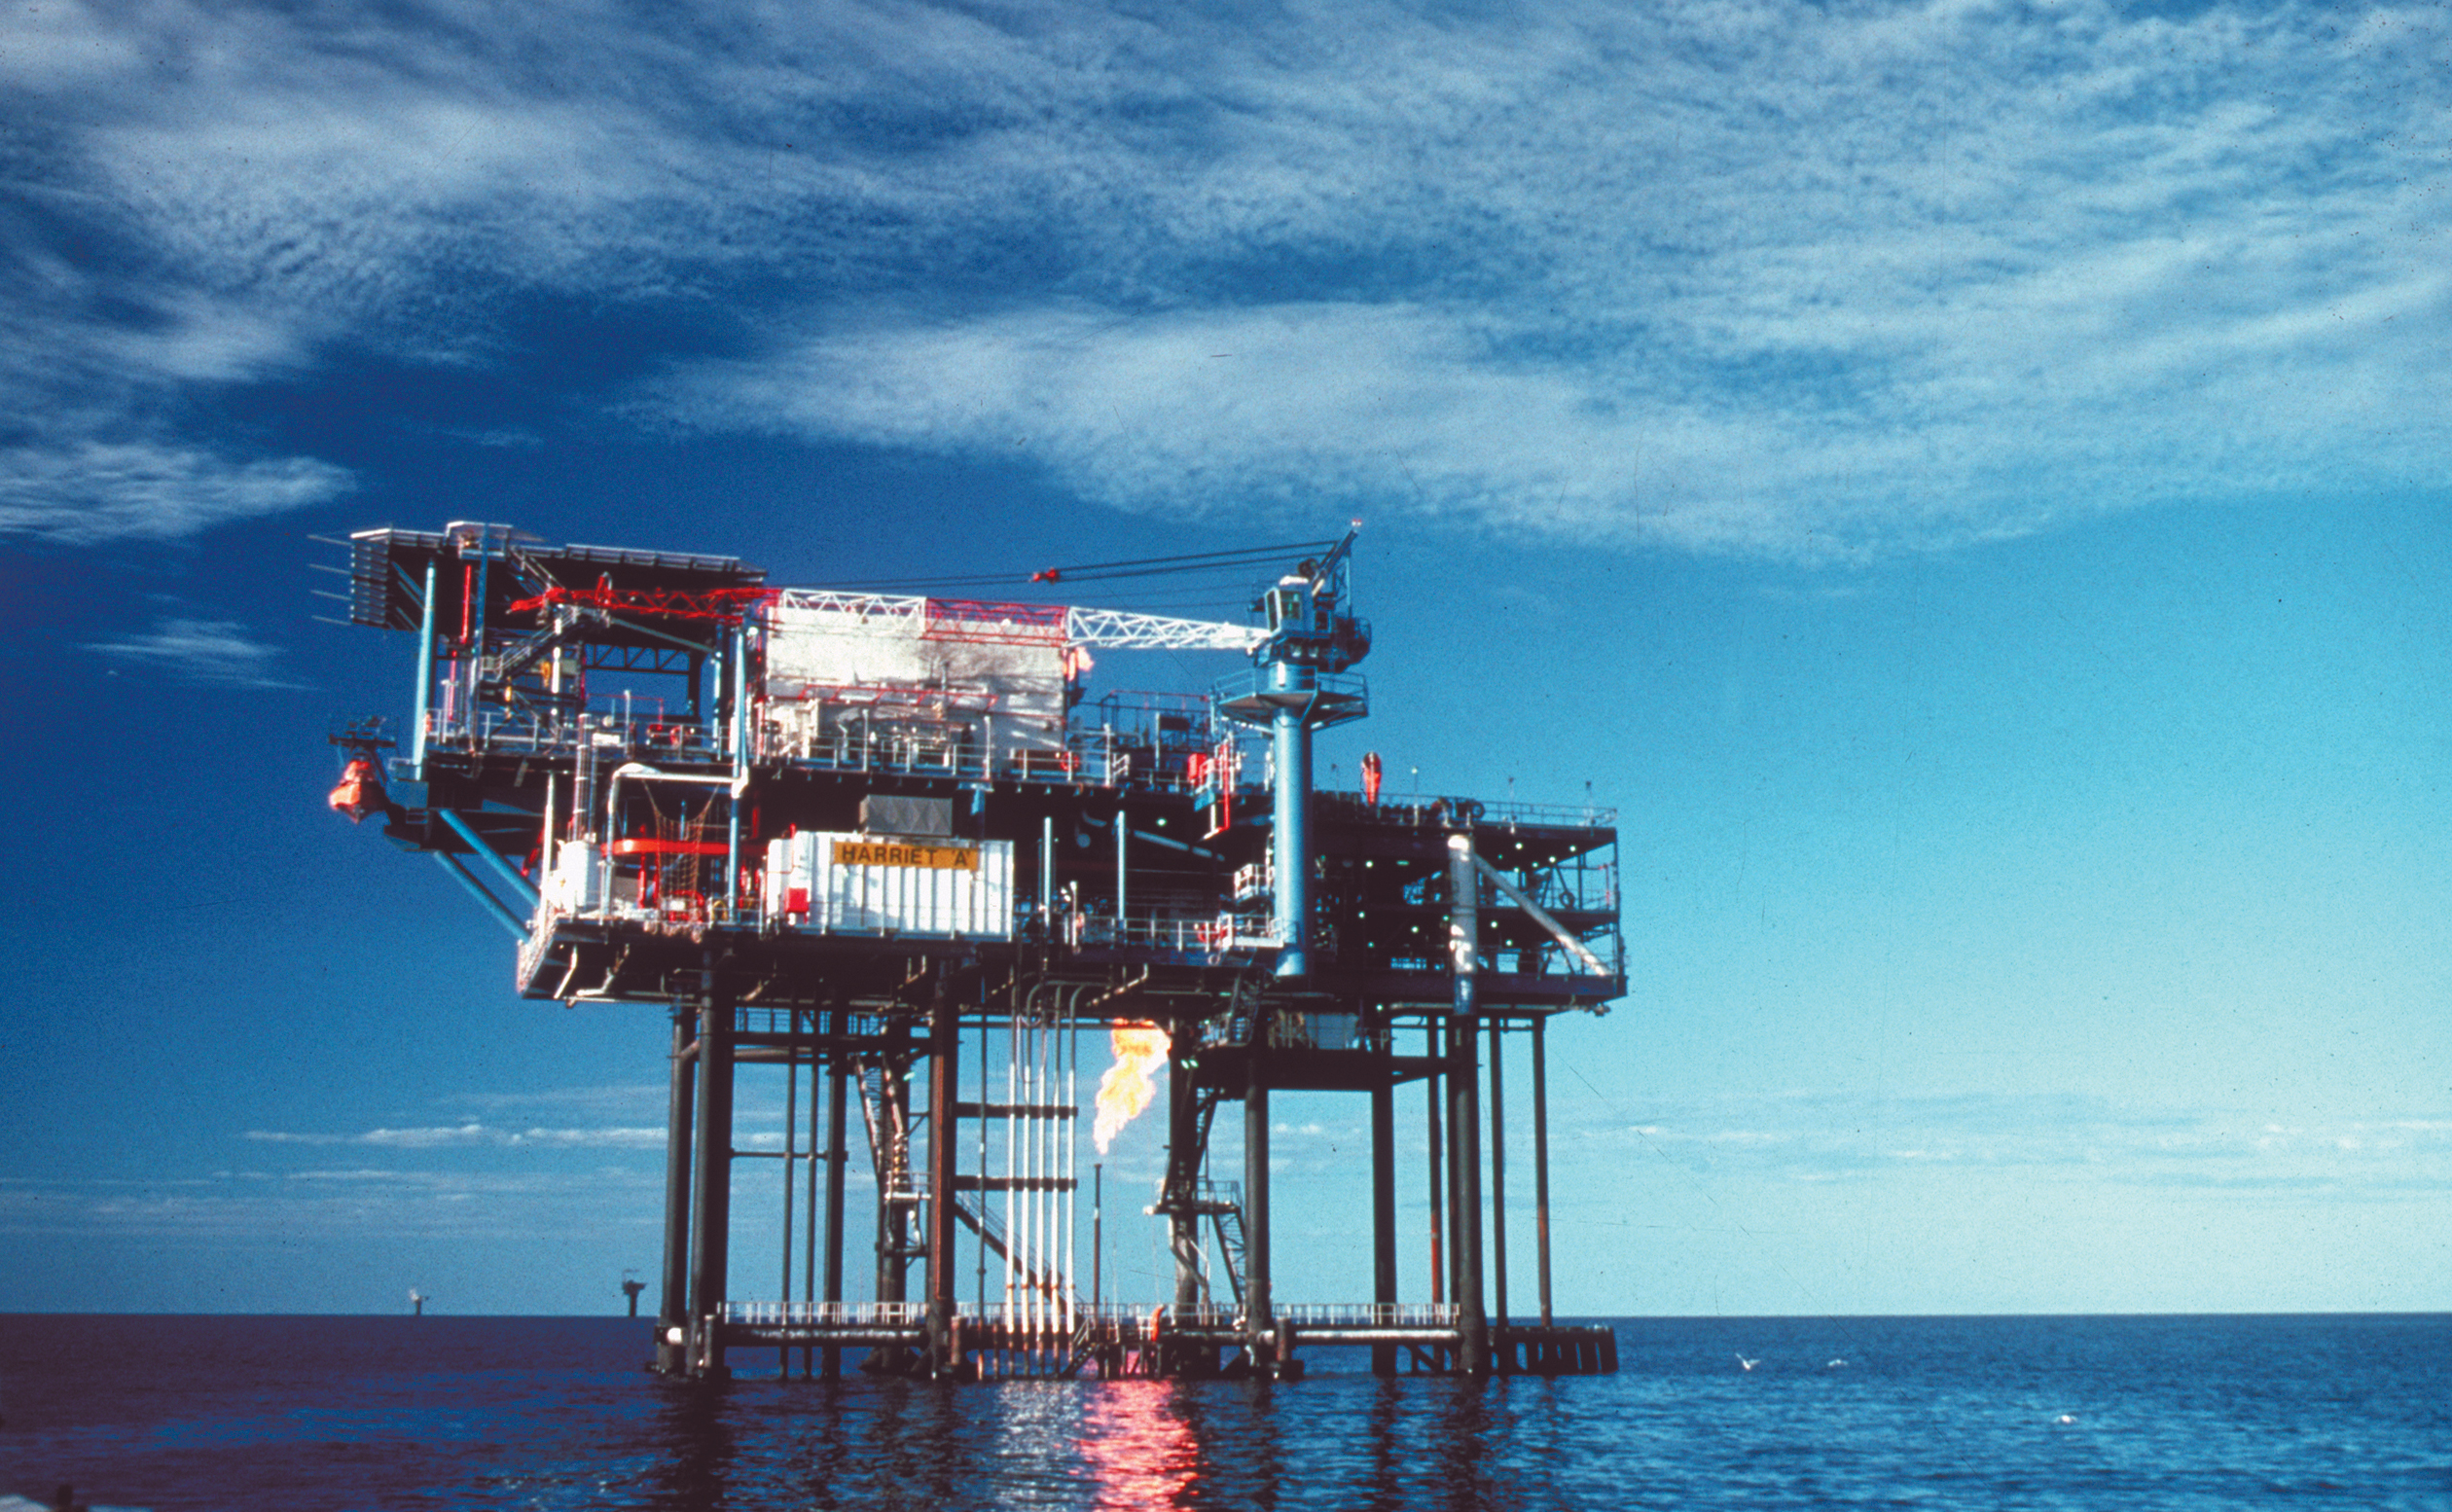 An offshore oil rig surrounded by ocean.